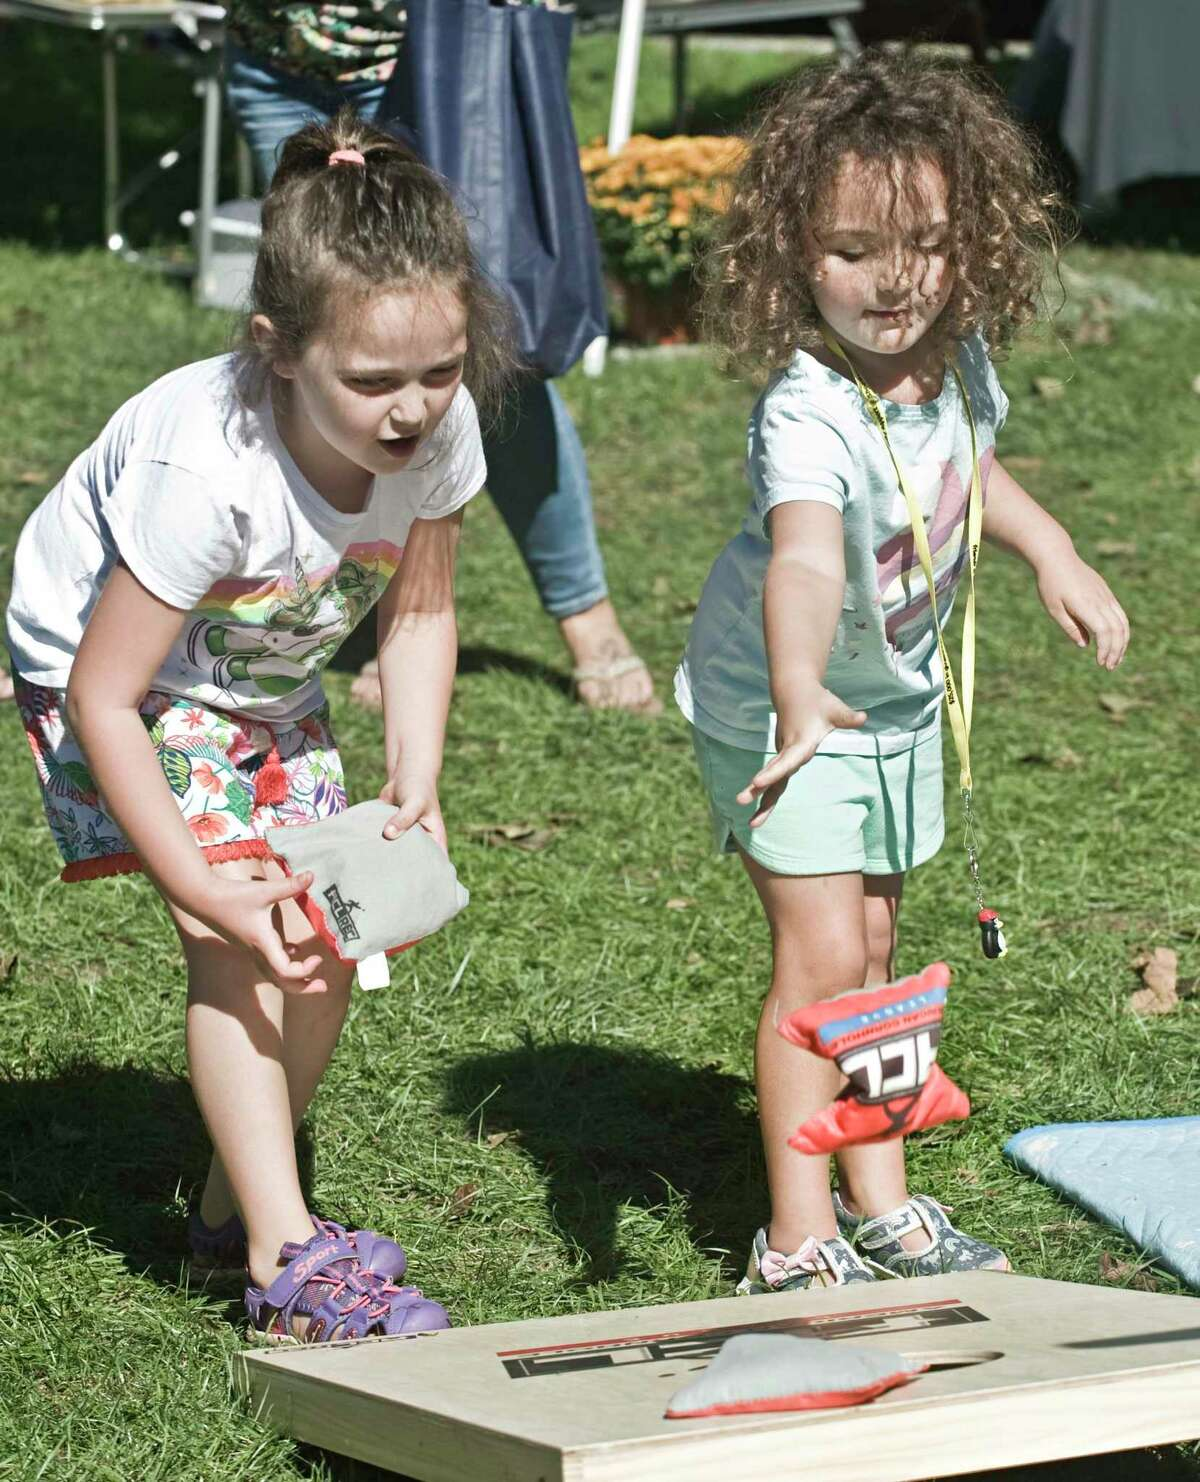 Taylor DeDiase, 6 of Brookfield, and her sister Remi, 4, doing the bean bag game at the Apple Festival on the New Milford town green. Saturday, Sept. 25, 2021